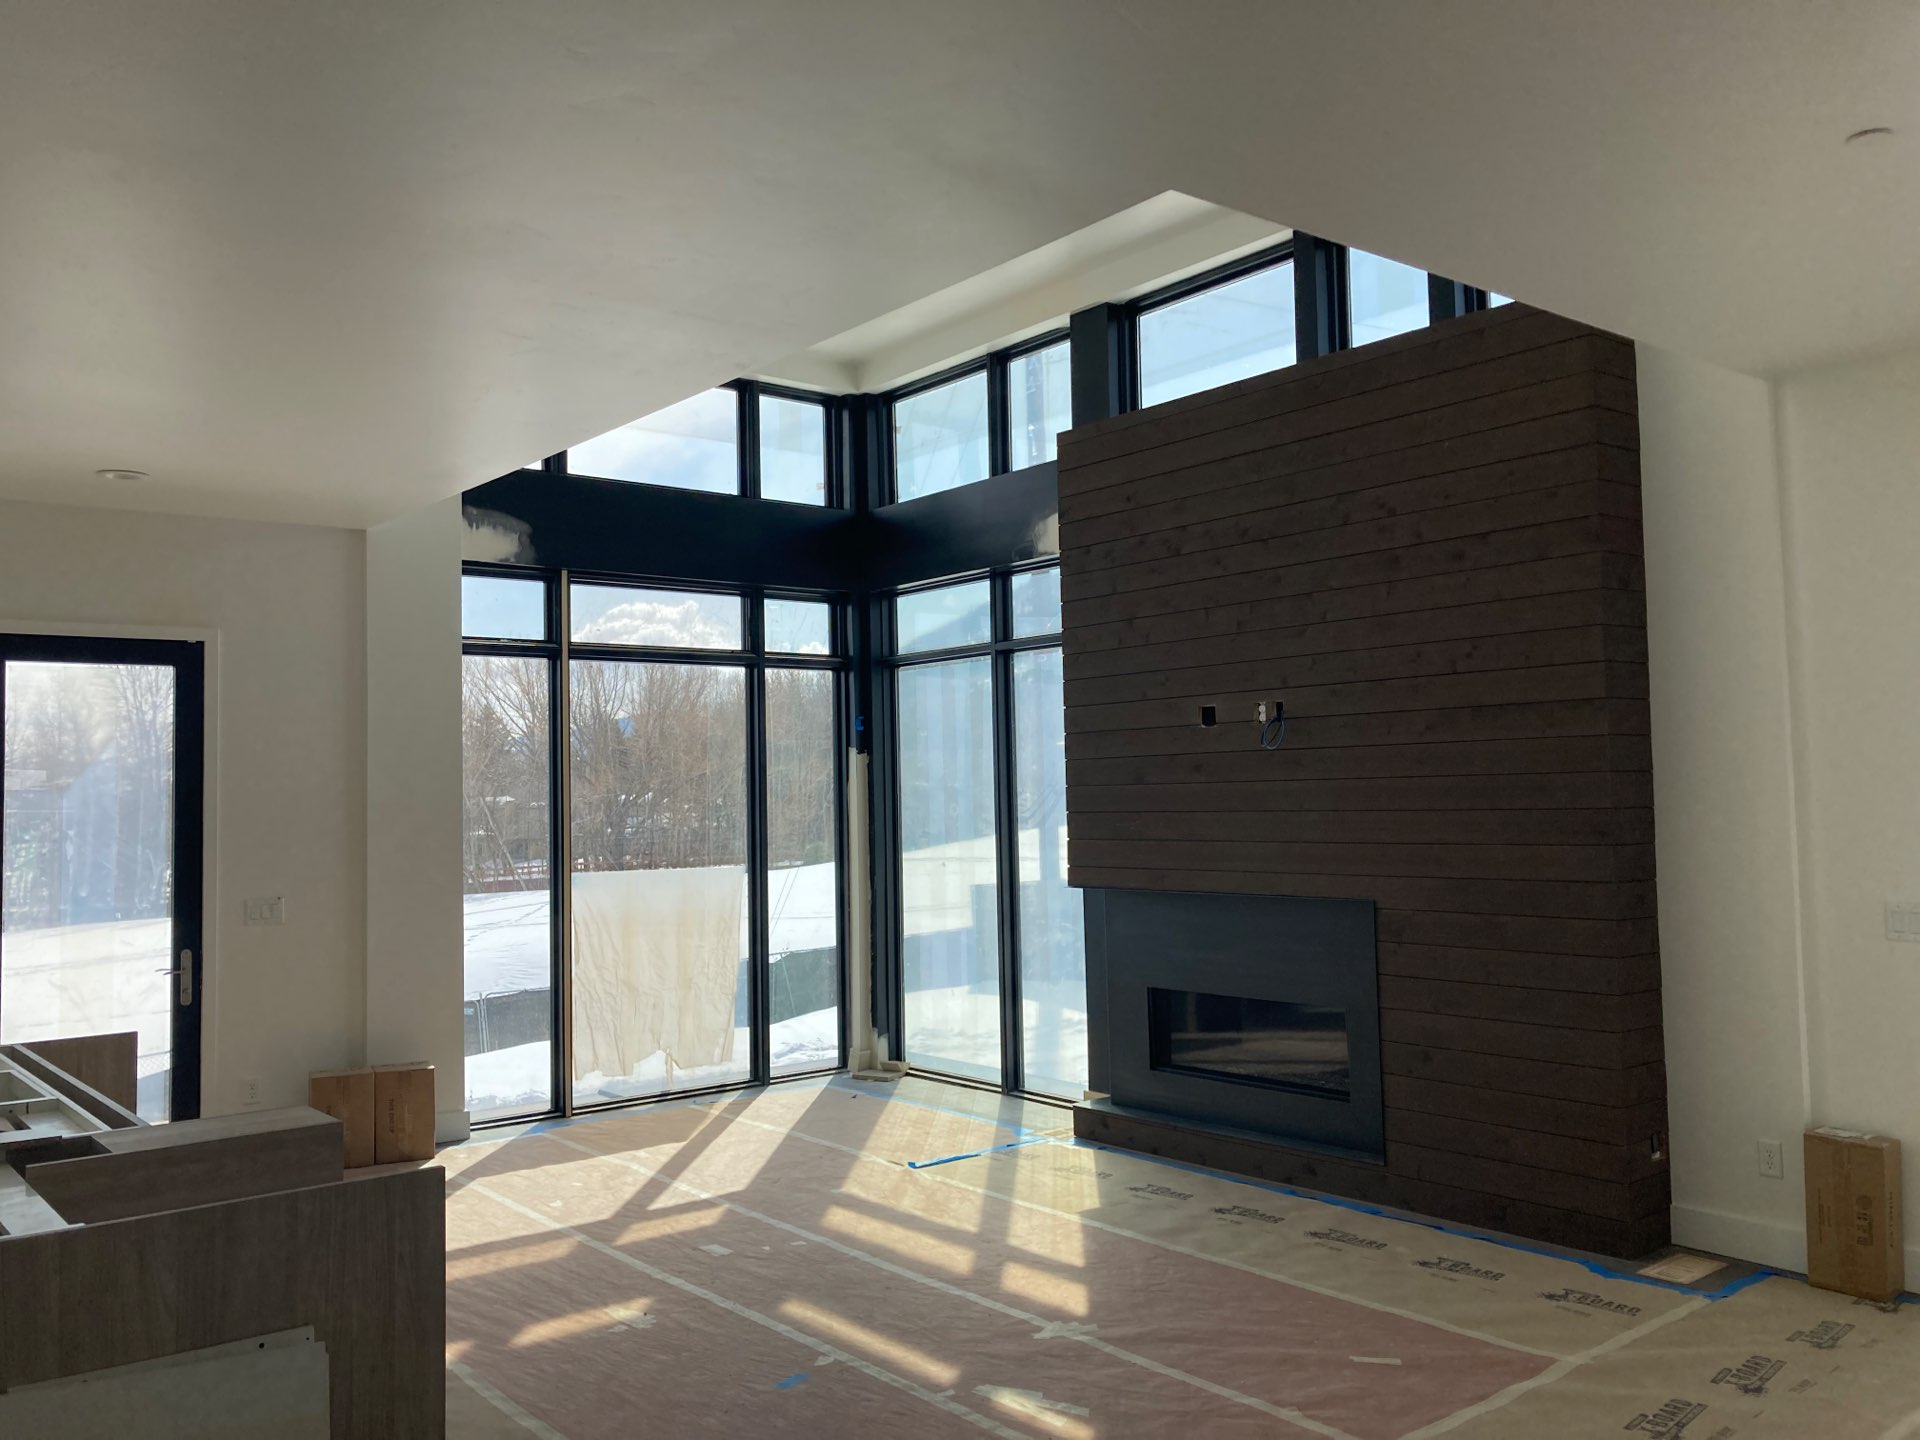 Unfinished living room in Viridian Townhomes at Canyons Village in Park City, Utah, architectural design by Elliott Workgroup